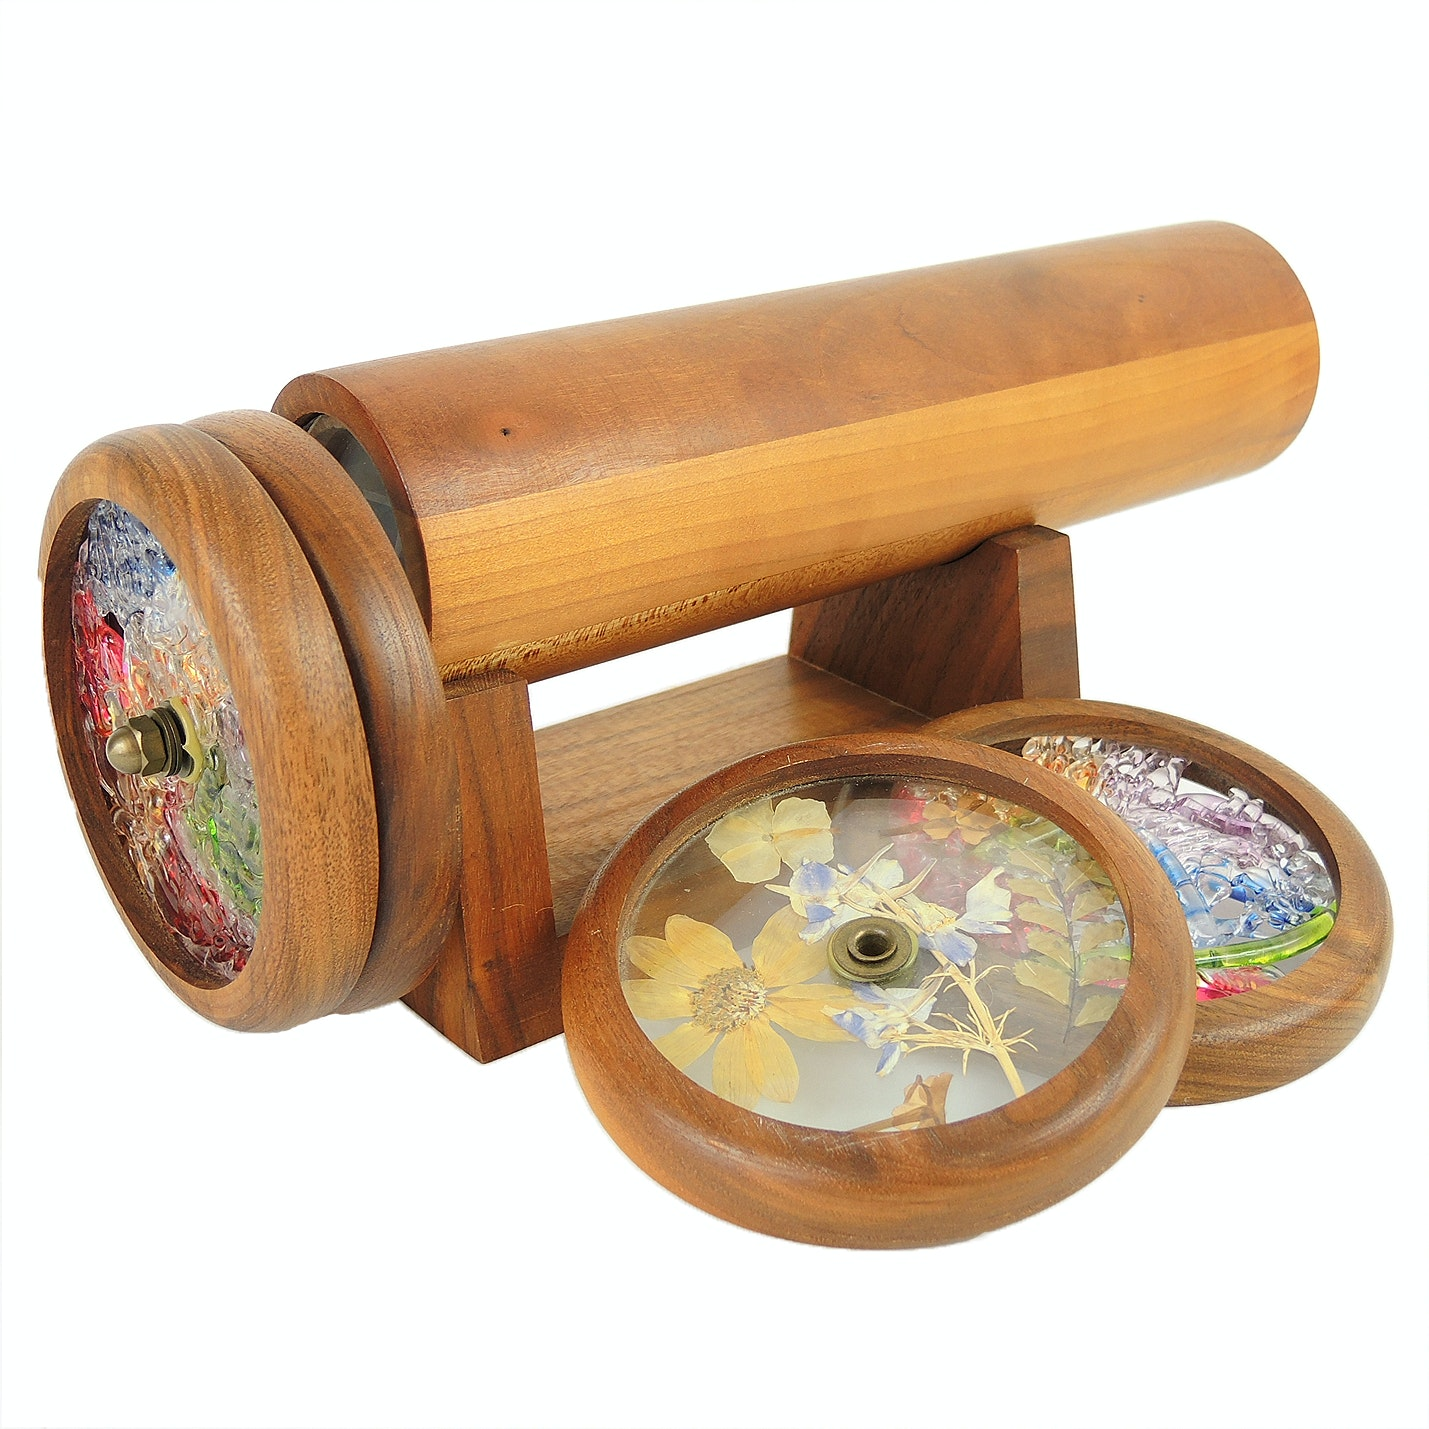 Kaleidoscope with Stand and Extra Wheels